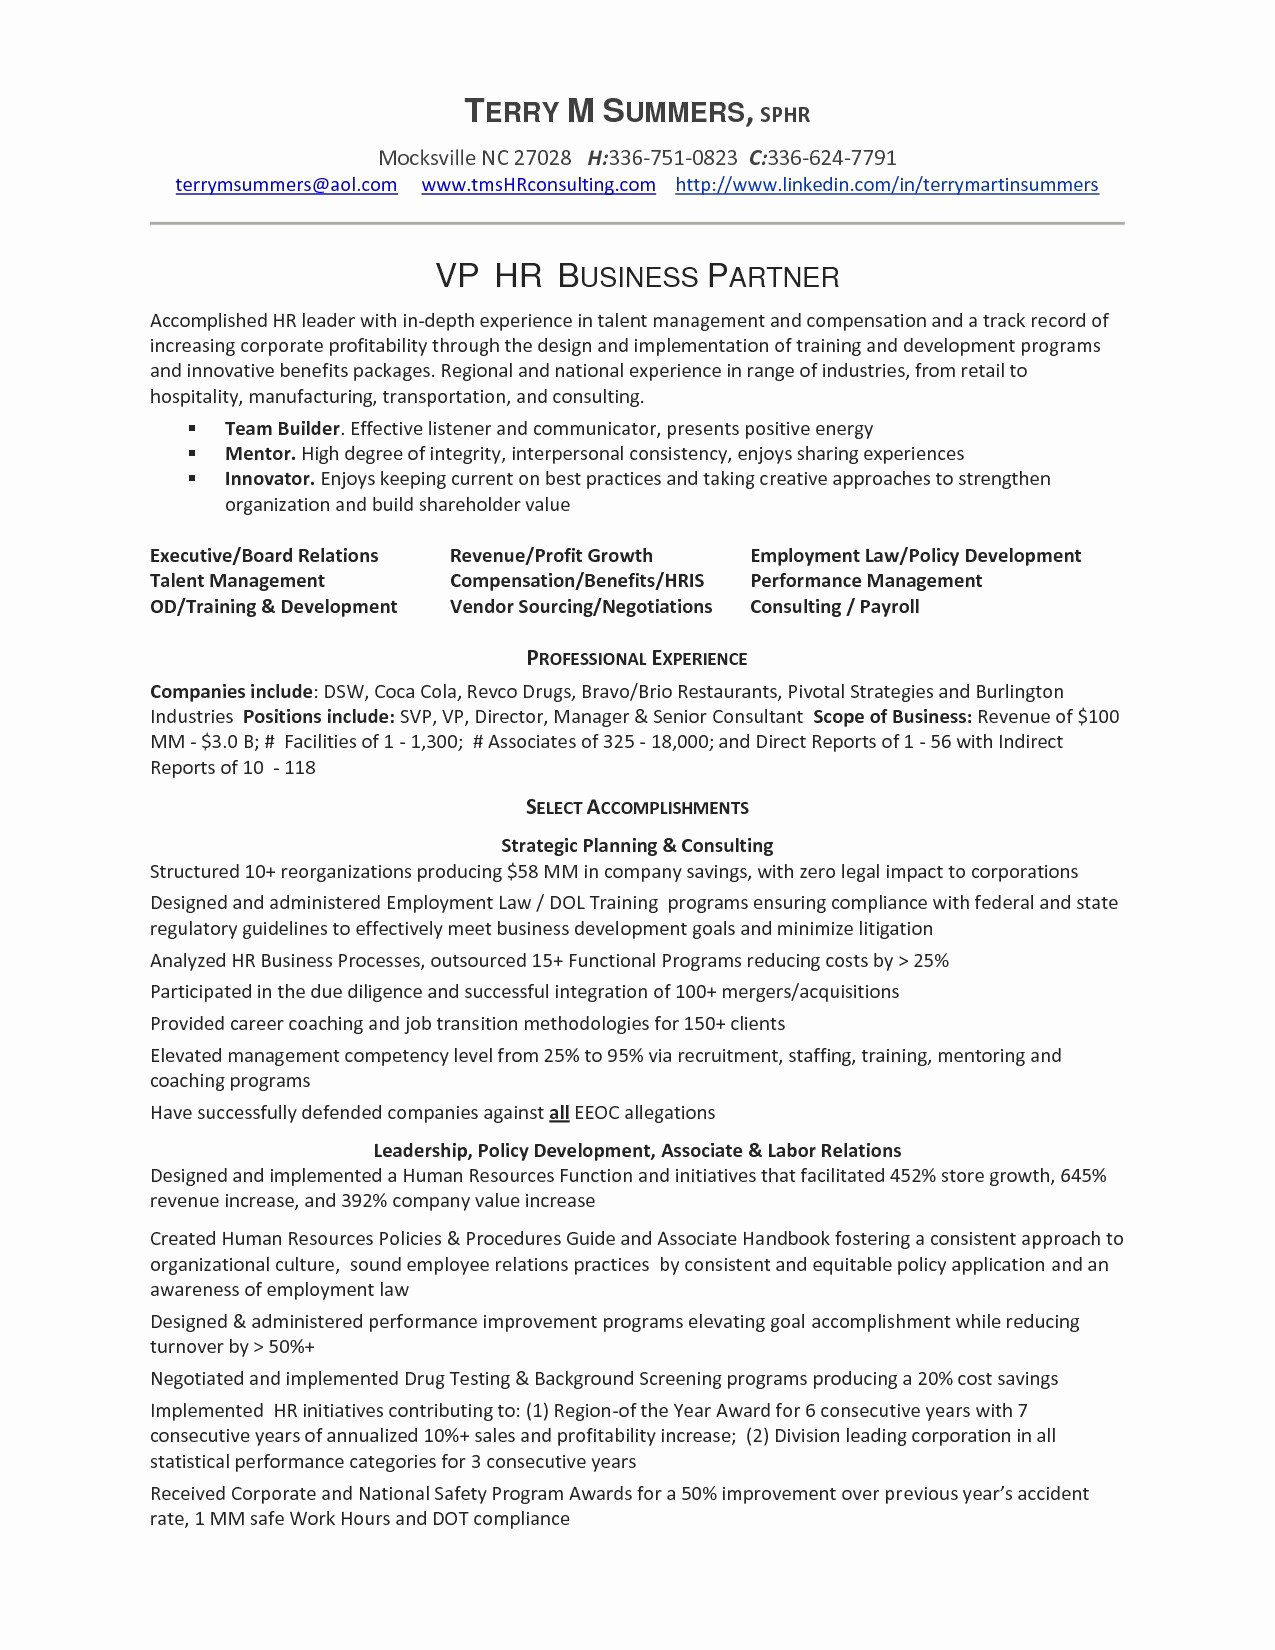 Cover Letter Template for Warehouse Position - Cover Letter for A Warehouse Position Unique Cover Letter for A